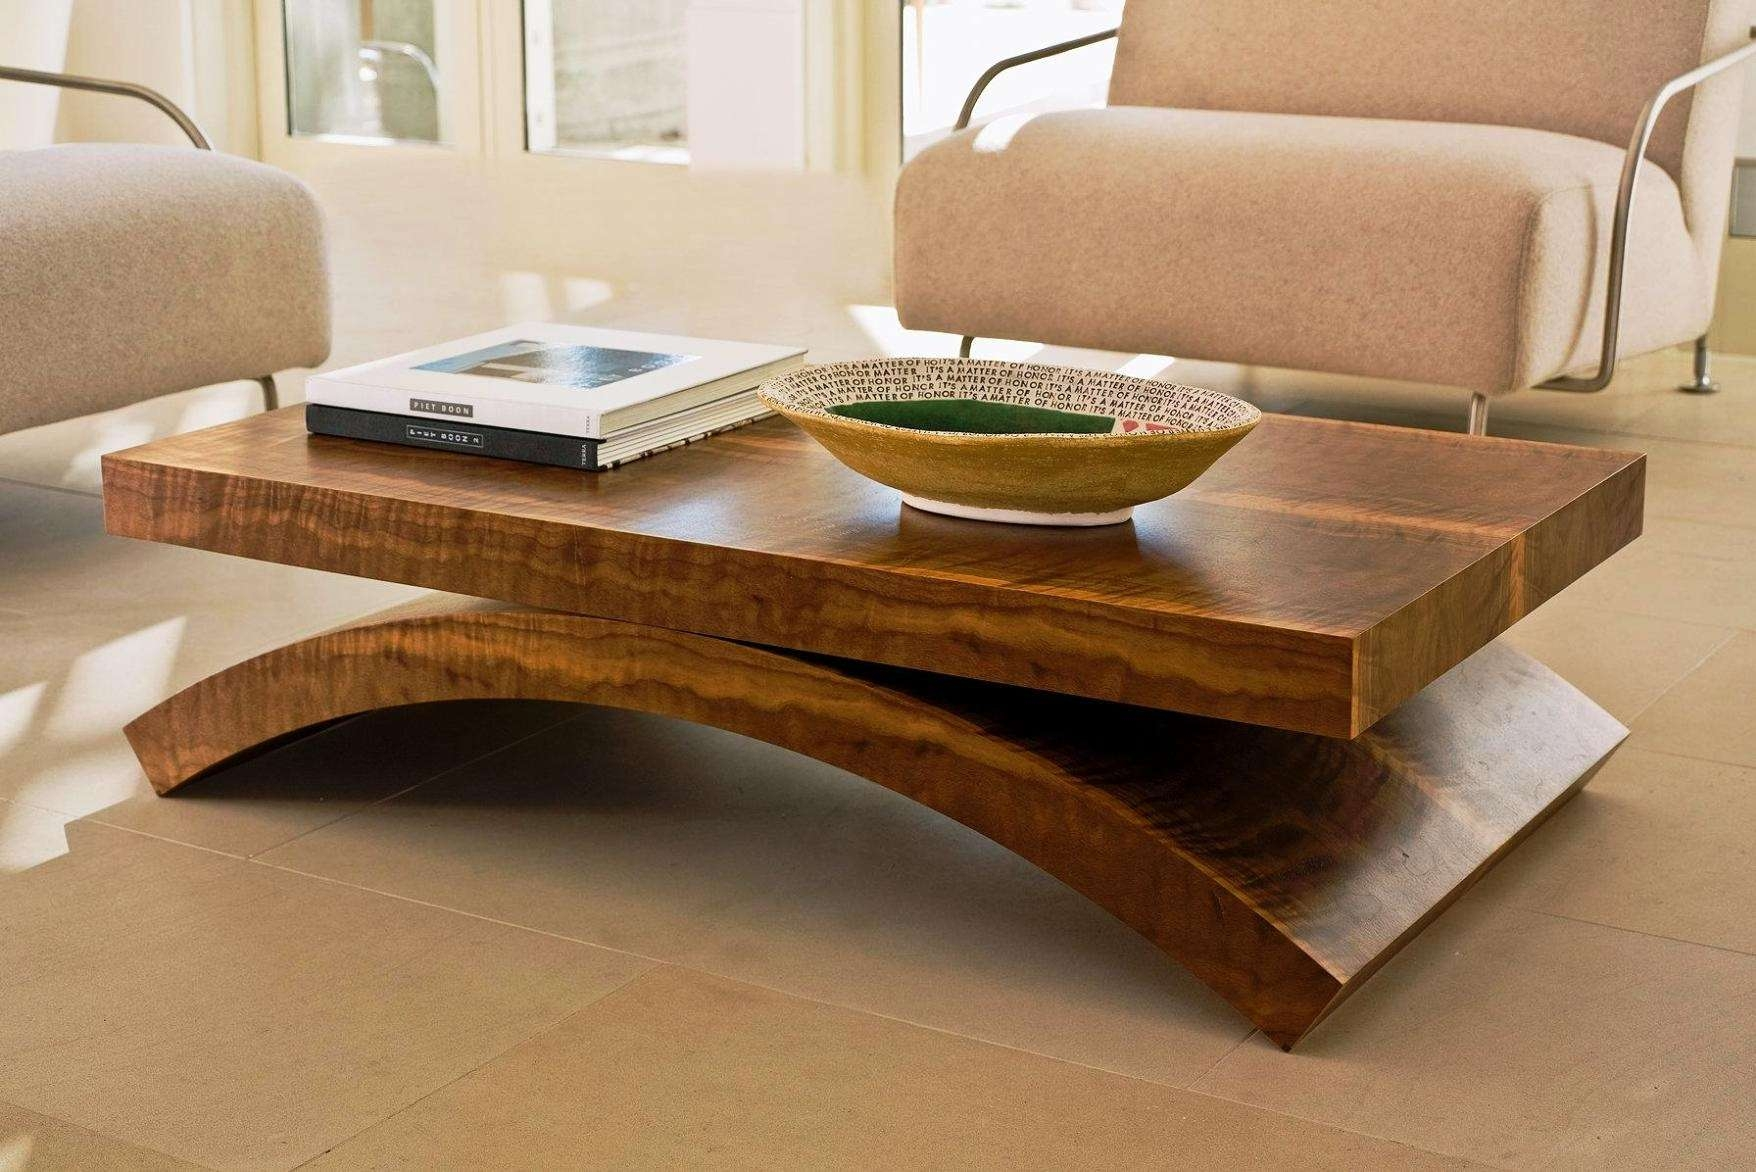 2017 Large Low Wooden Coffee Tables Intended For Coffee Tables : Coffee Table Low Wooden Decoration Ideas Copper (View 5 of 20)